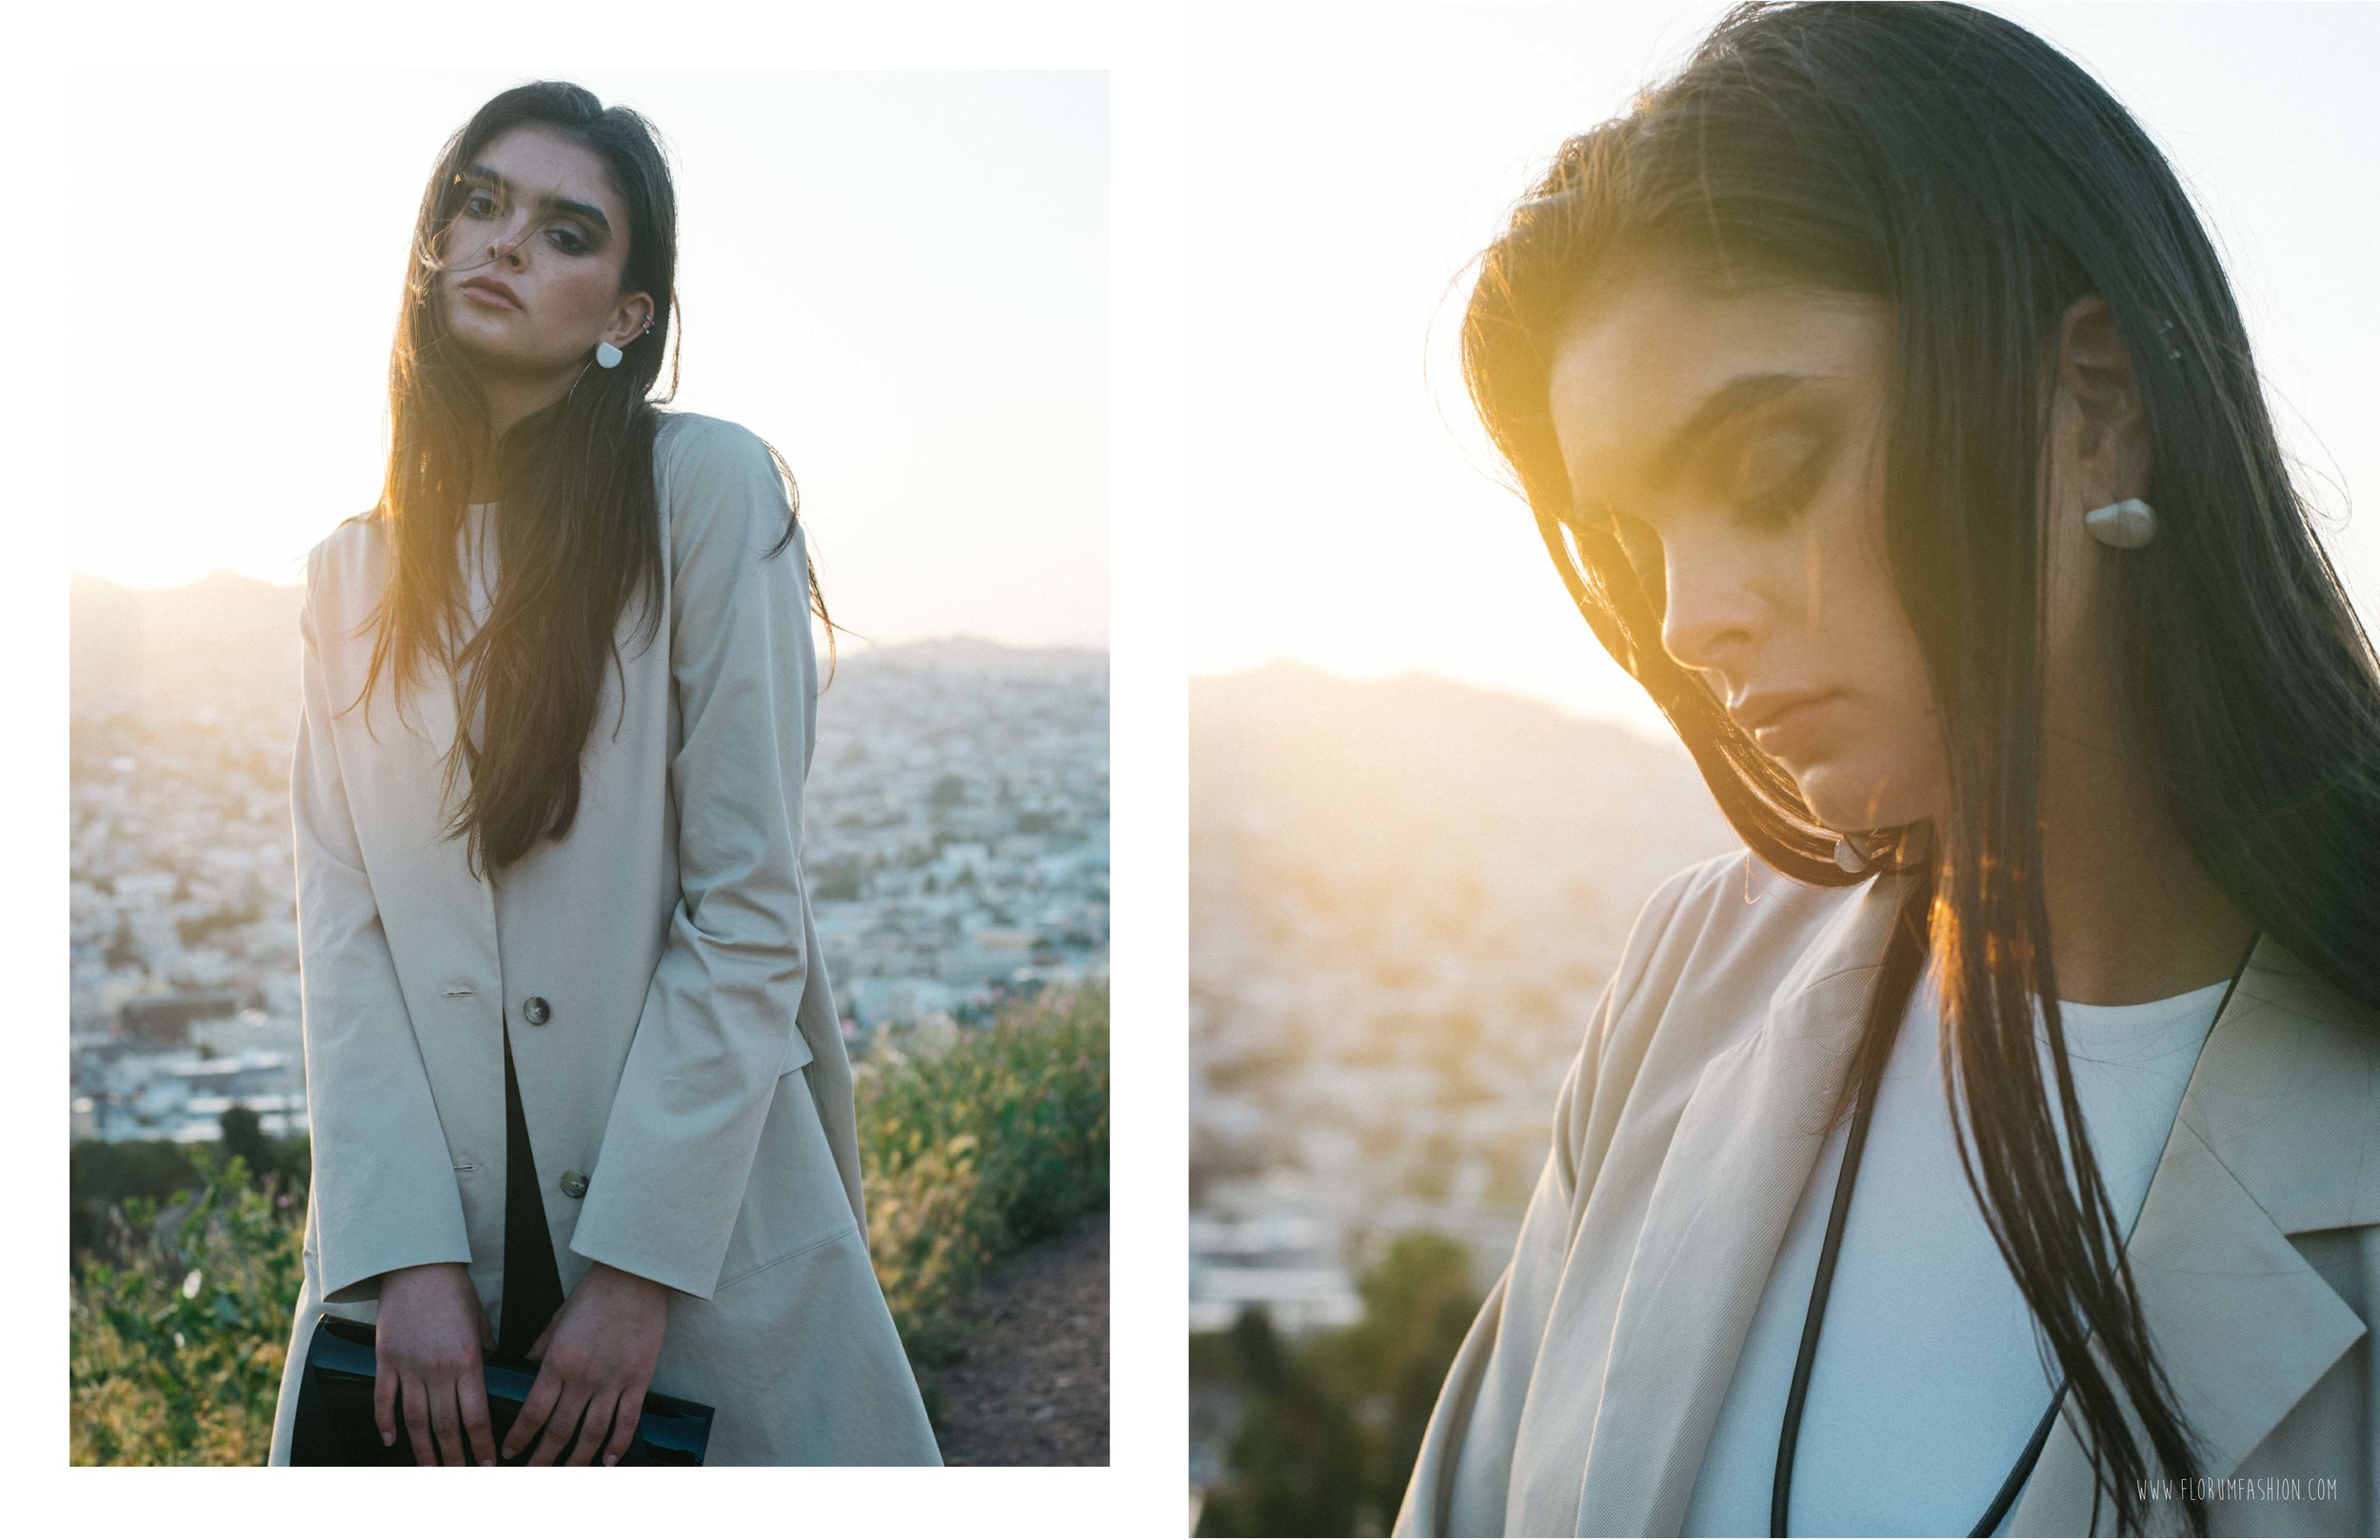 Madison Flowers of Stars Models by Lionel Reyes for Florum Fashion Magazine - Sustainable Project San Francisco California - Stephanie Stimmler Venita Stylist - Cassandra McClure09.jpg